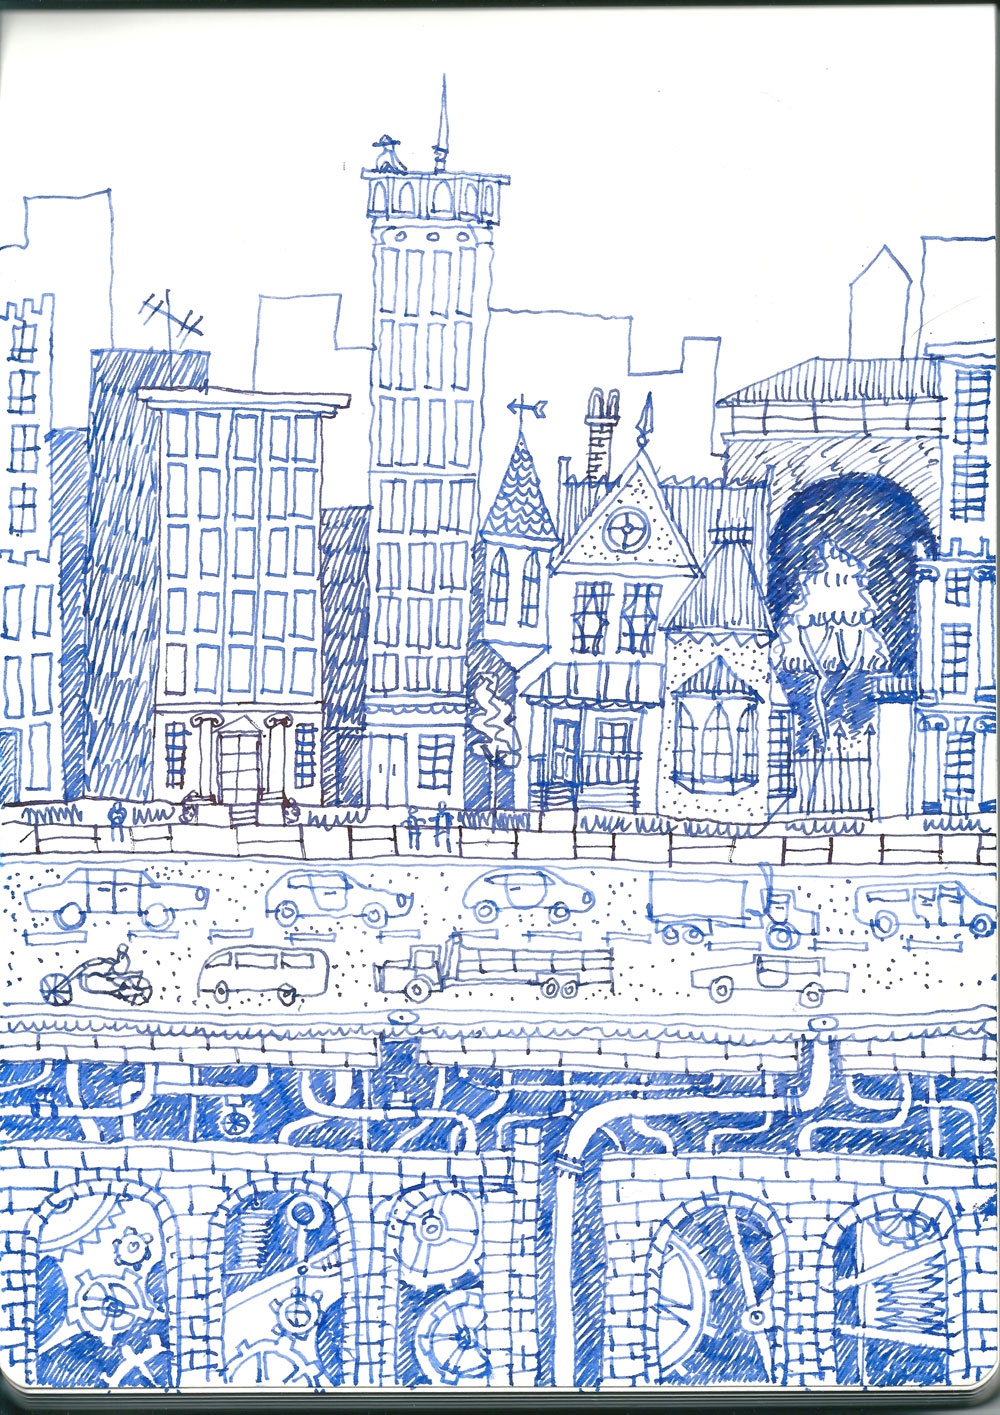 city-skyline-sketch.jpg